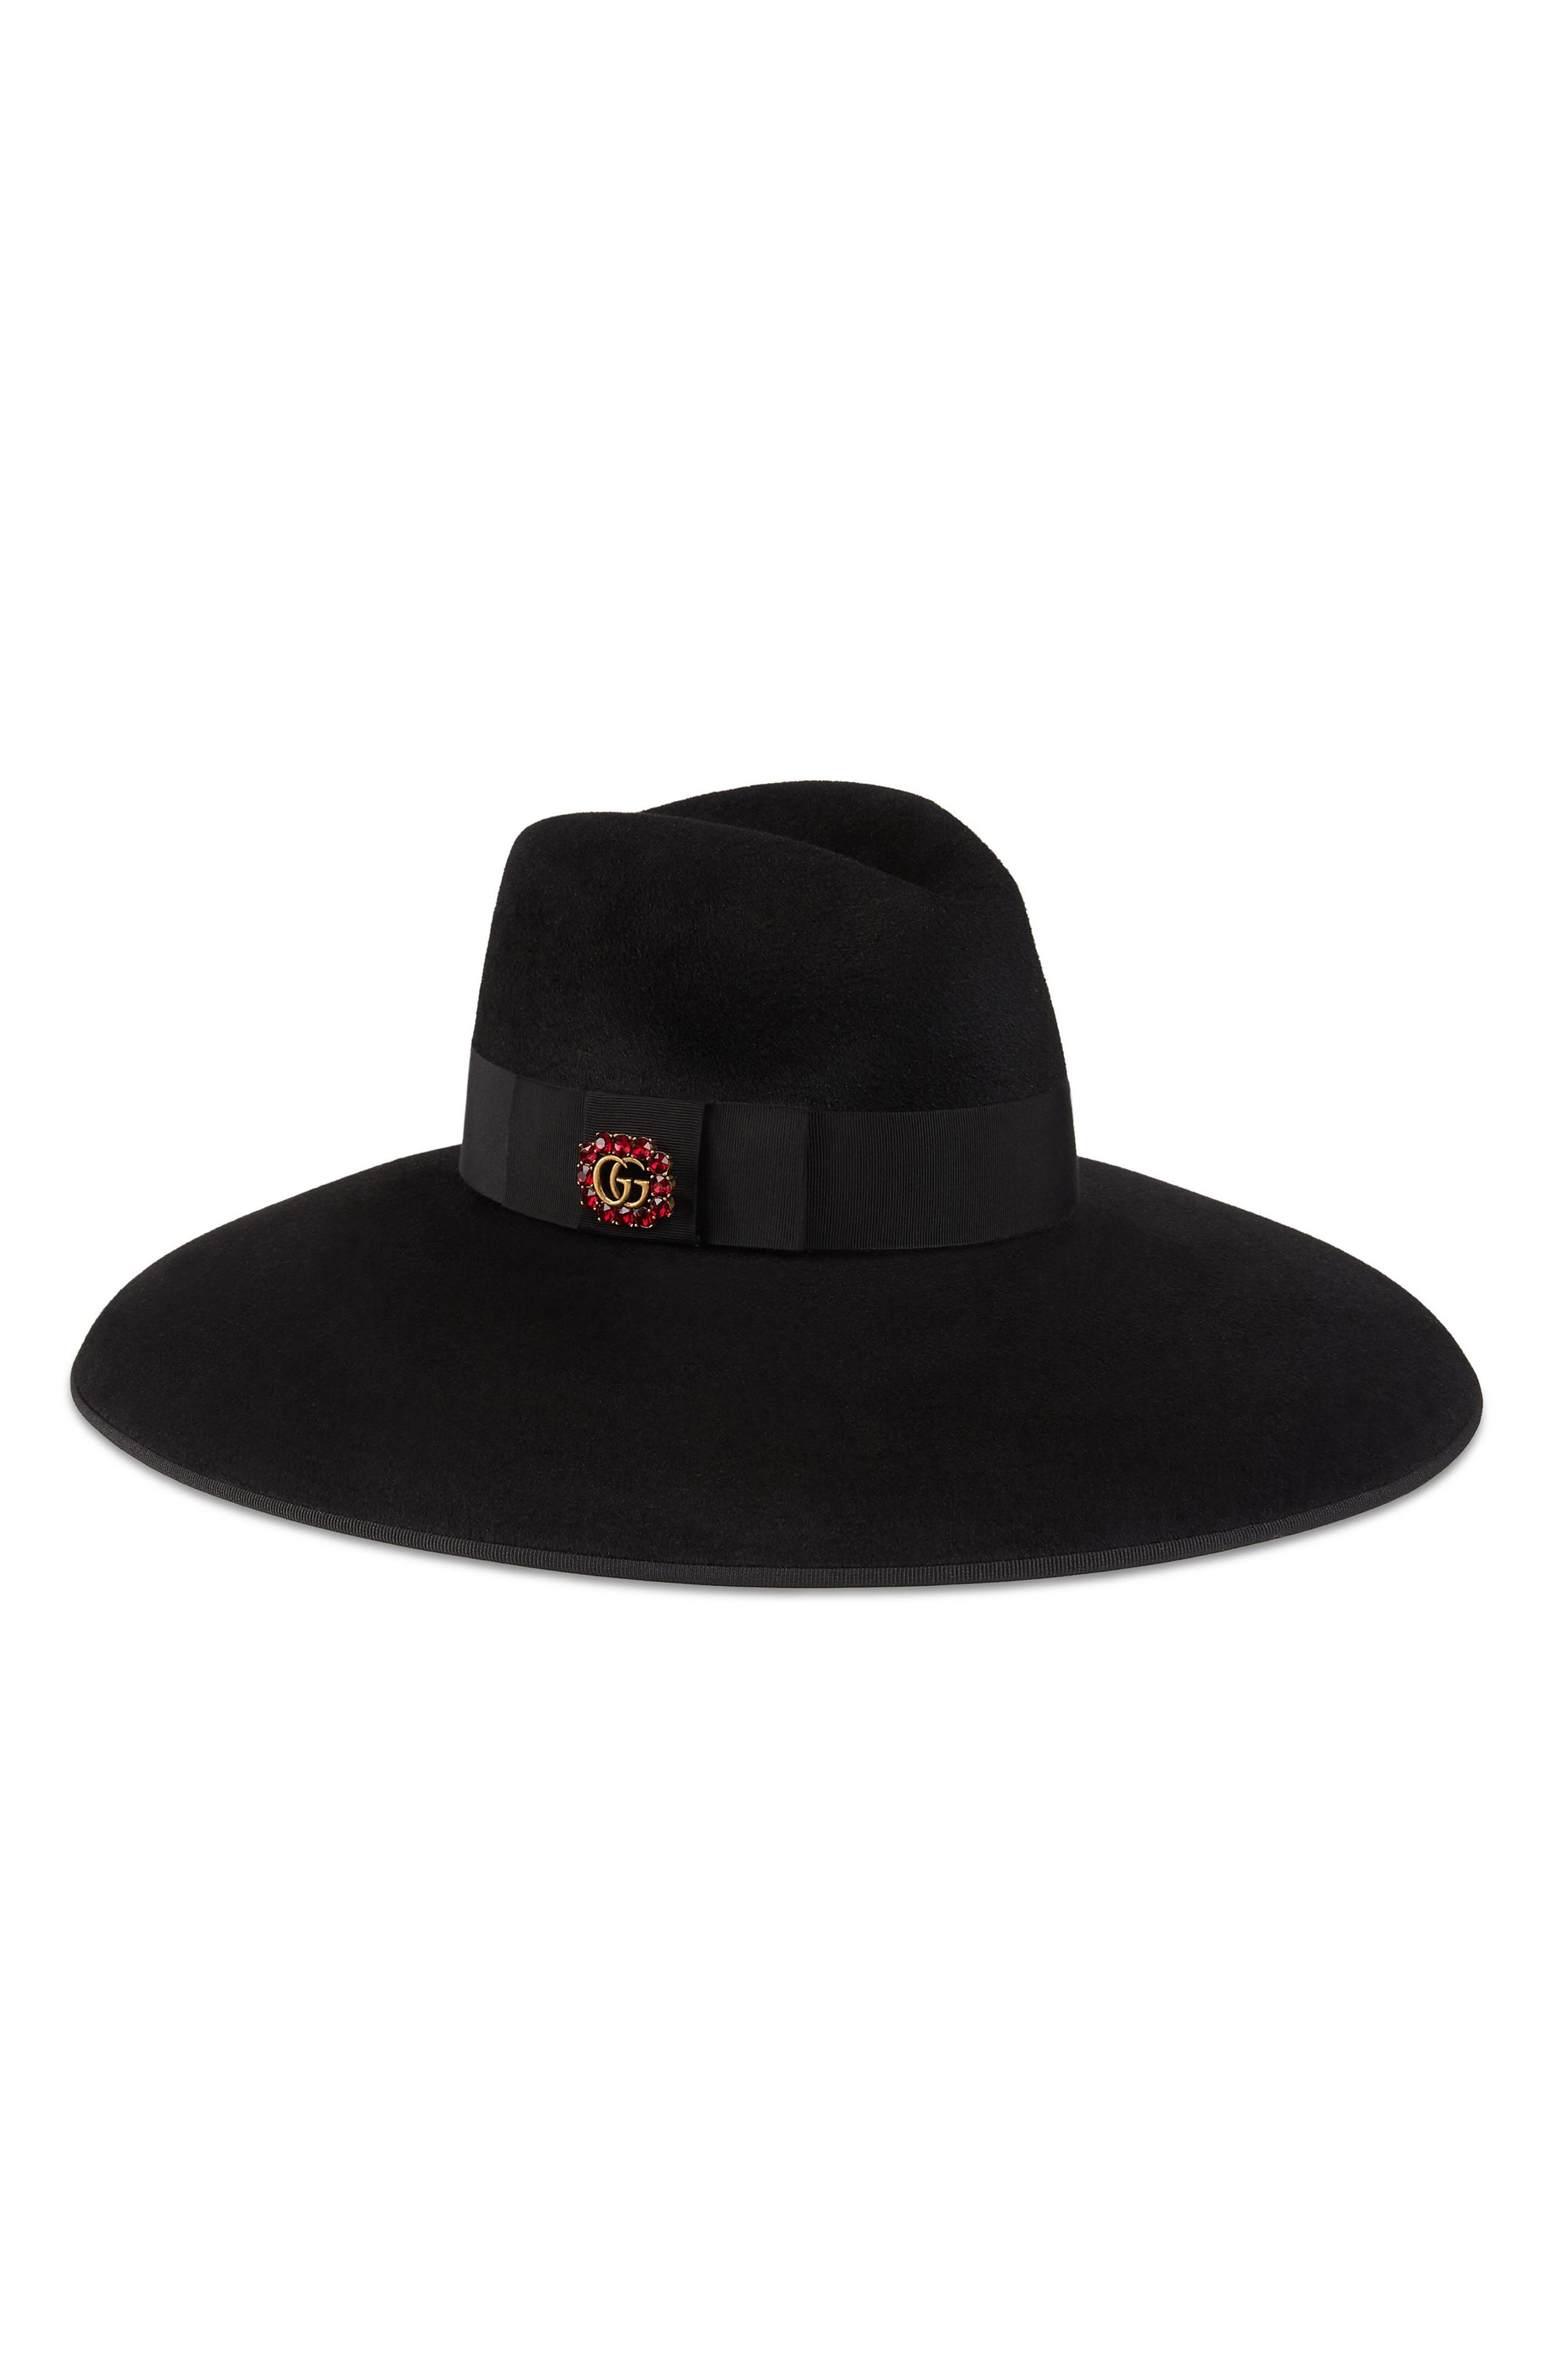 Main Image - Gucci Fur Felt Wide Brim Hat